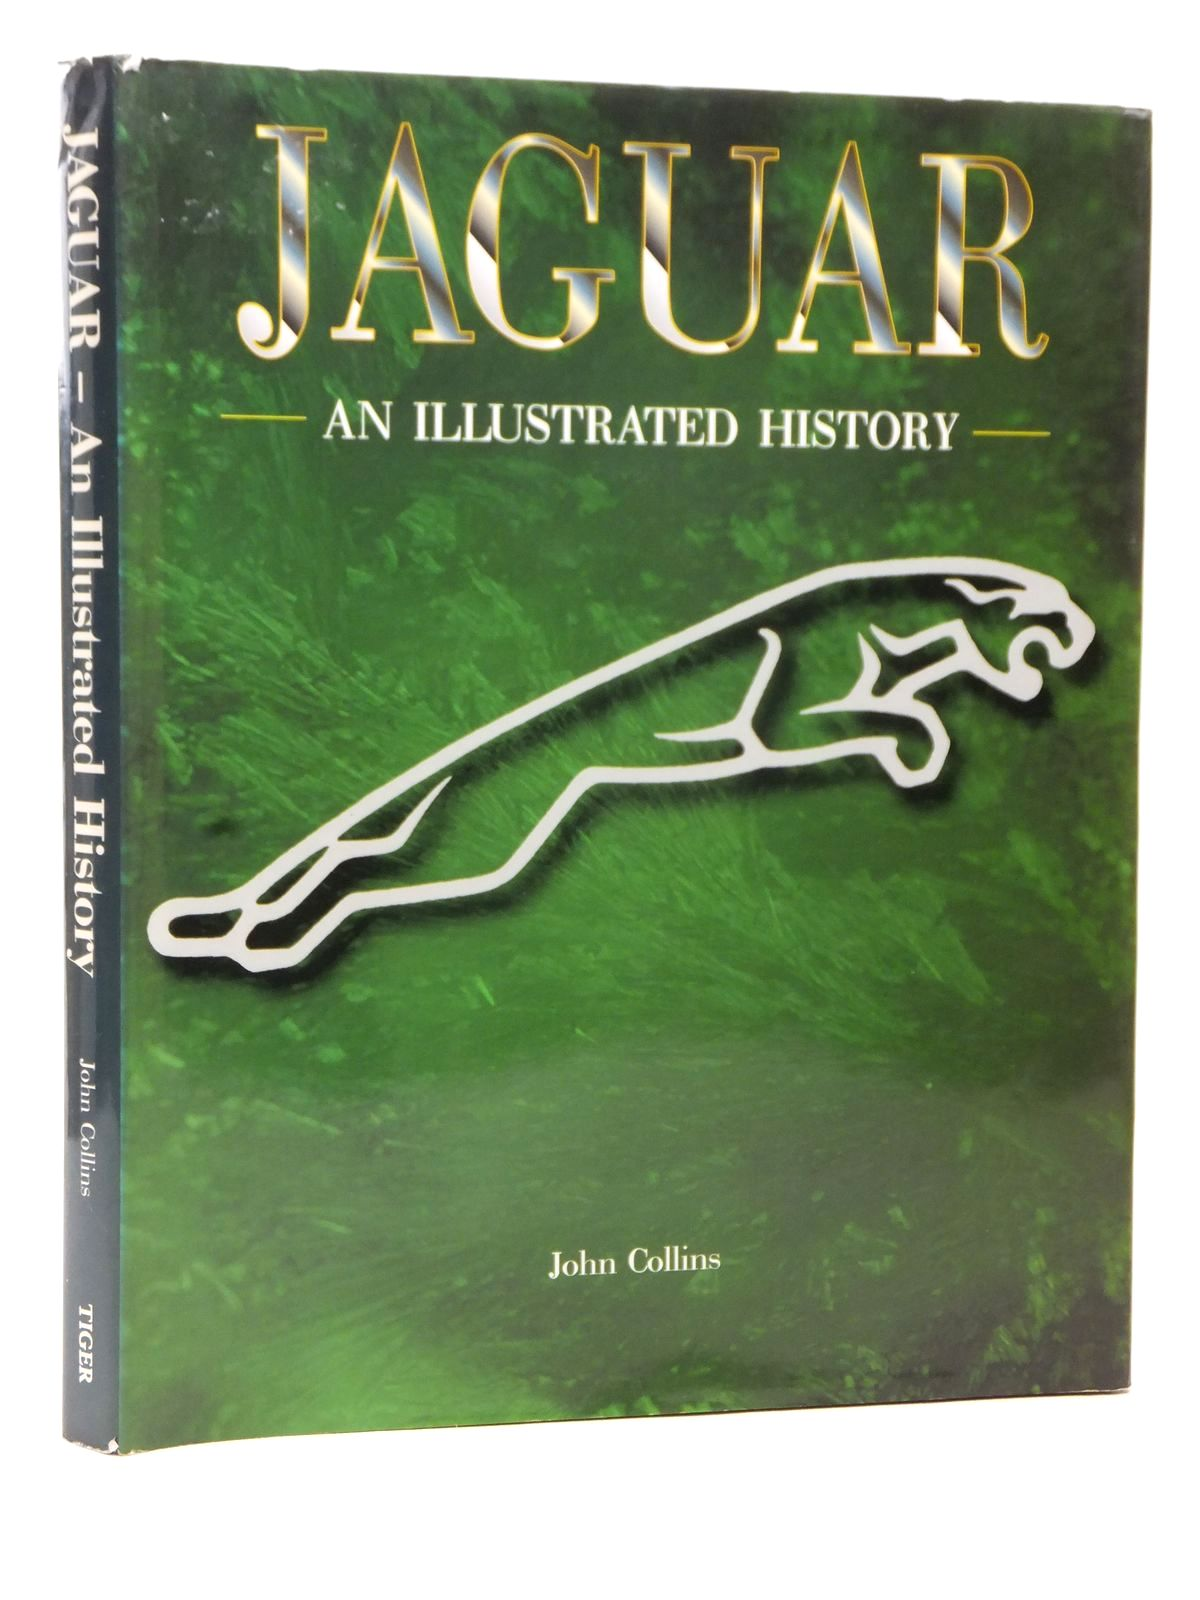 Photo of JAGUAR AN ILLUSTRATED HISTORY written by Collins, John published by Tiger Books International (STOCK CODE: 1609292)  for sale by Stella & Rose's Books